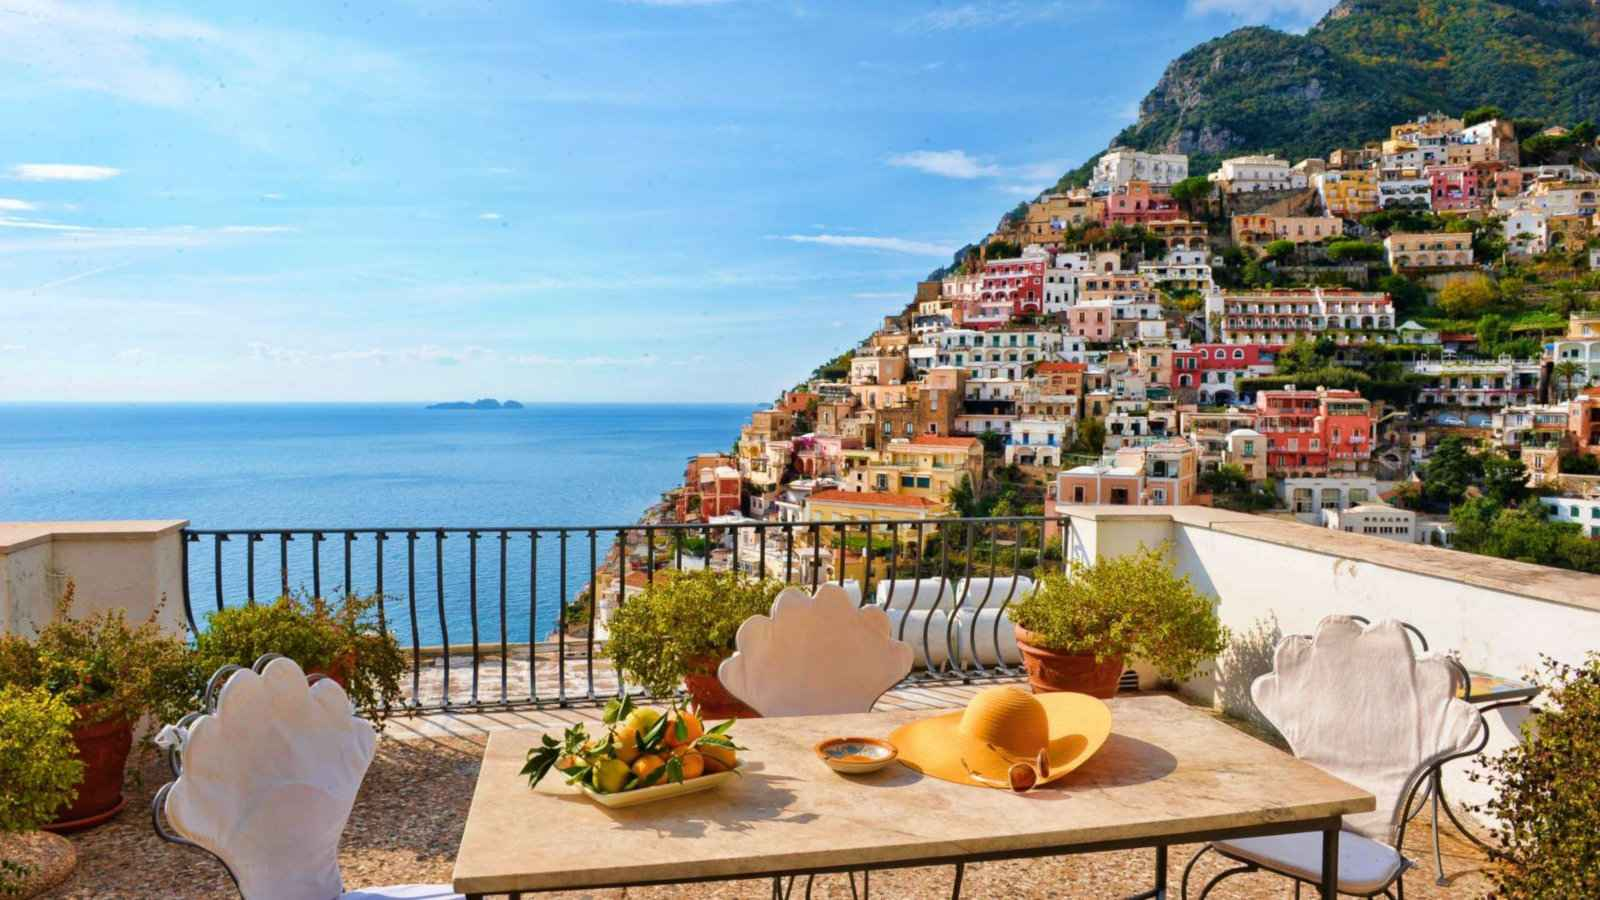 Villa Rose is one of the best budget accommodation options in Positano for gay travellers